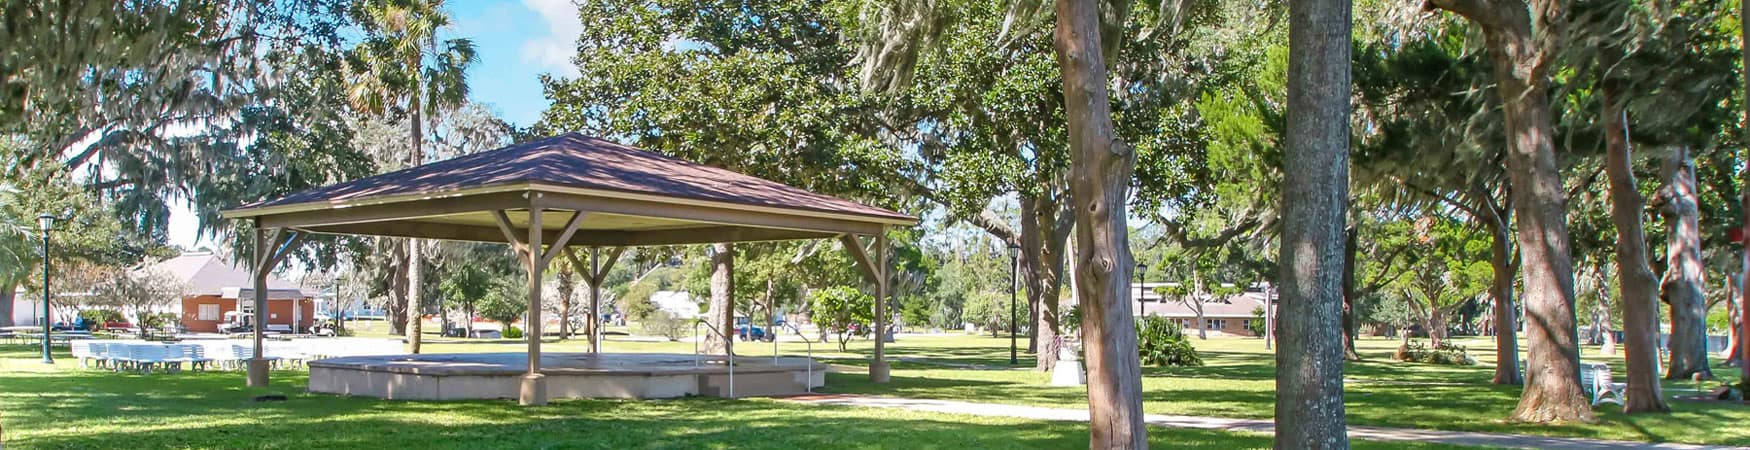 The Rotary Pavilion by the St Johns River, Orange Park Florida, Moosehaven